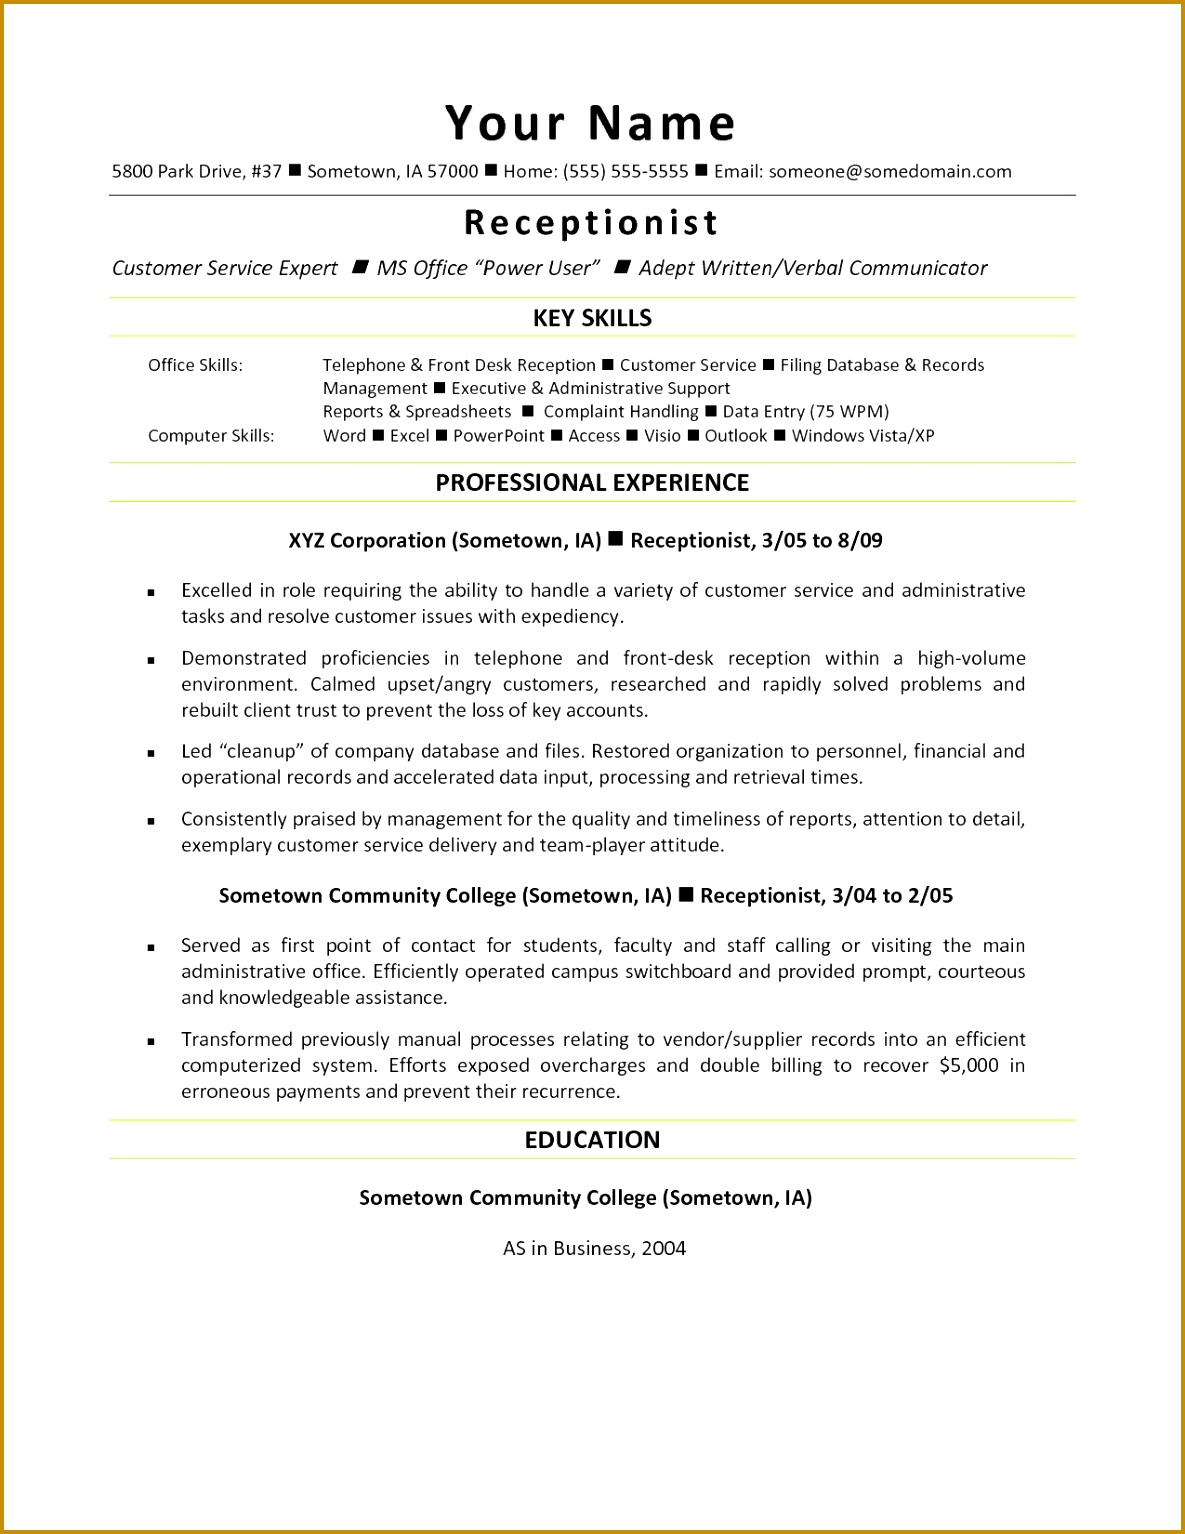 Example Cover Letter for Jobs Best Sample Puter Skills for Resume Unique Beautiful Od 15341185